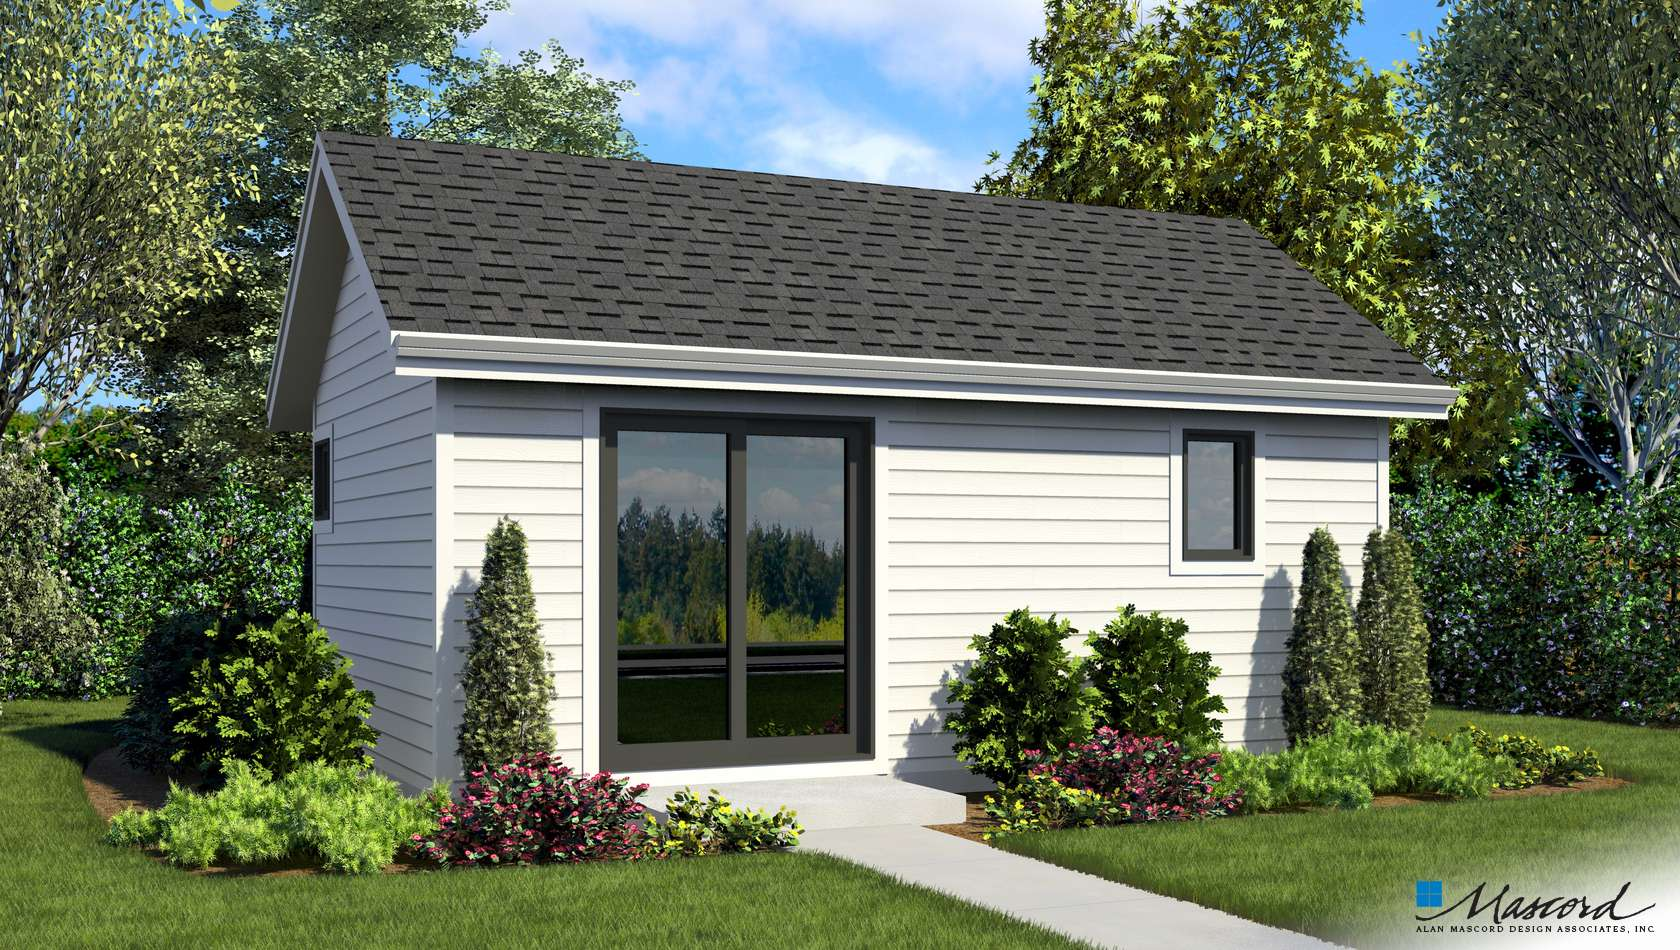 Main image for house plan 1181: The Moorpark